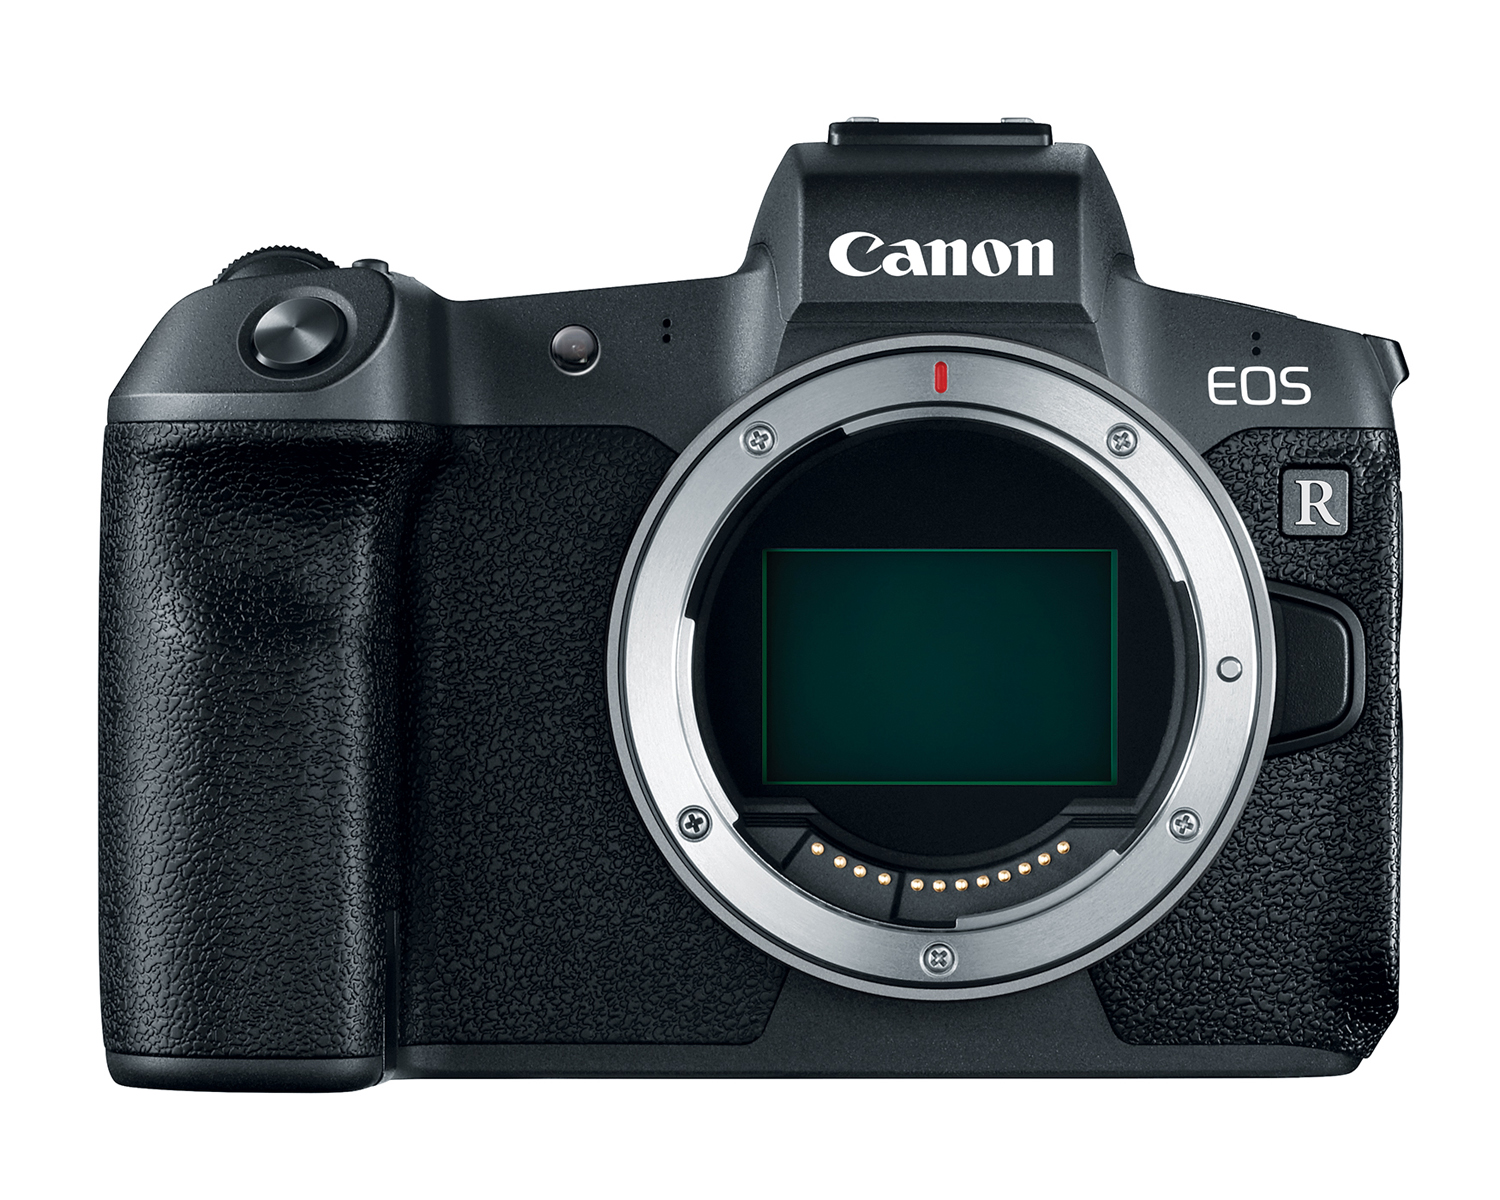 Deal: Canon EOS R – $2049 (reg. $2299, Import Model)